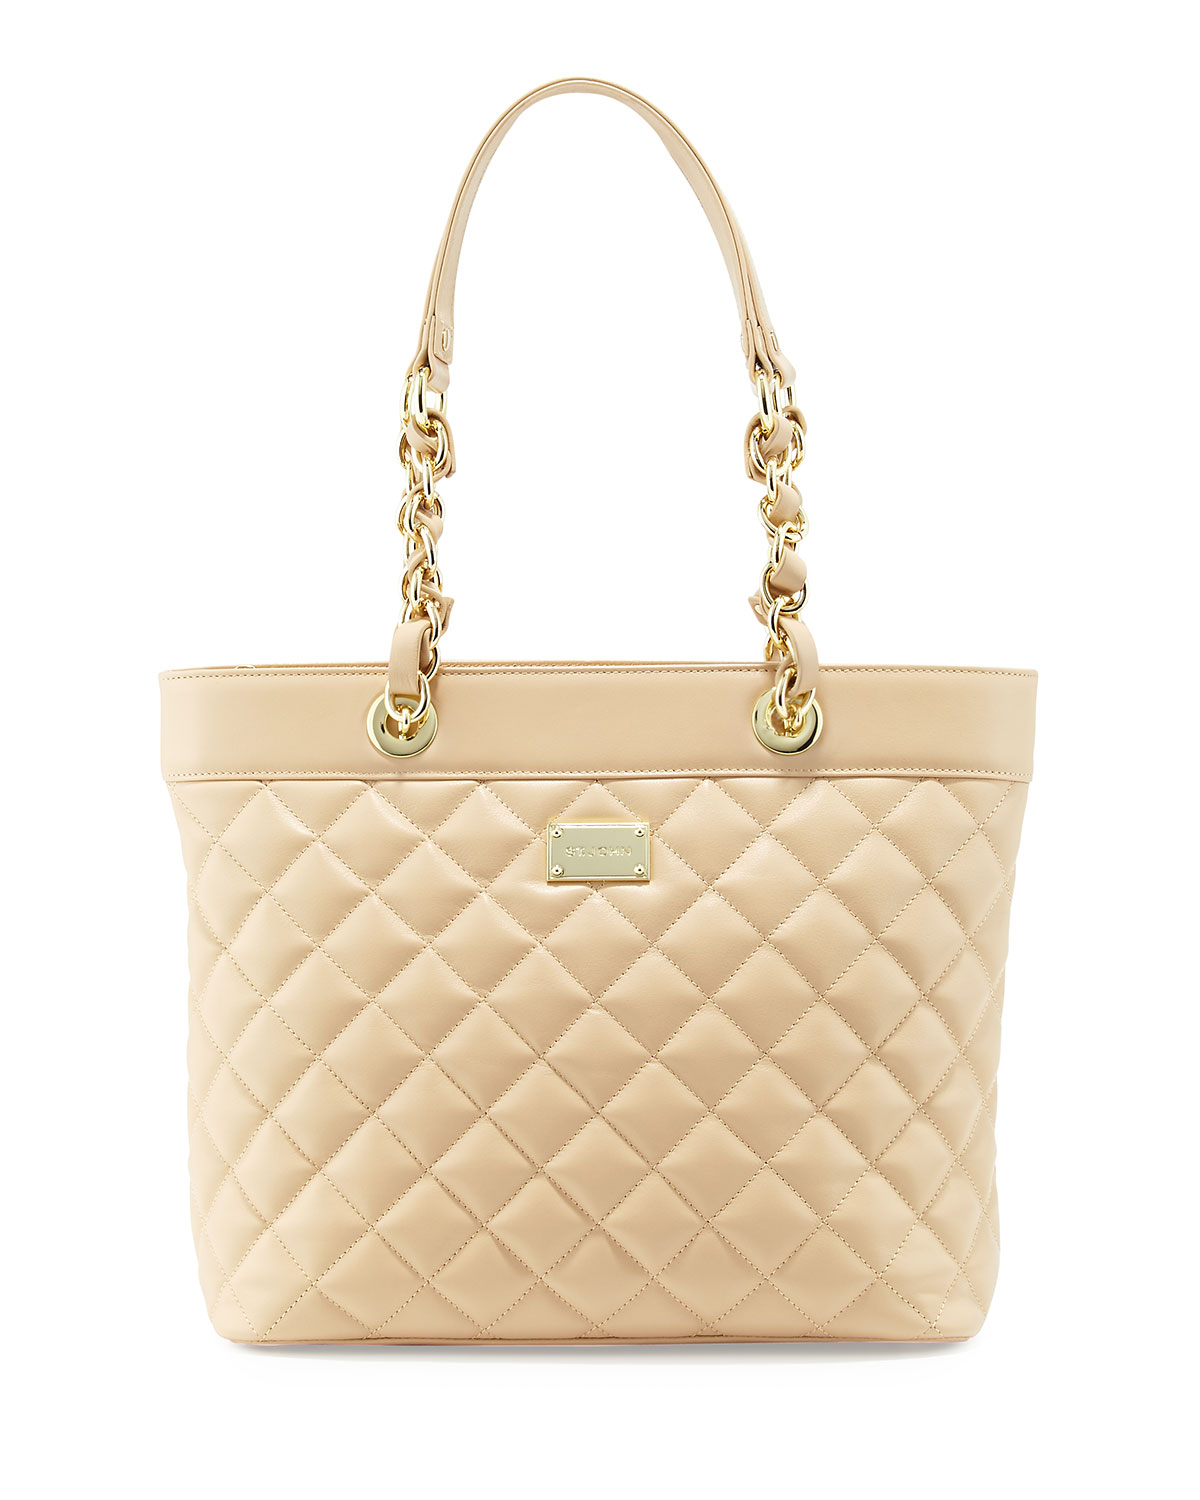 Quilted Leather Tote Bag Classic Beige Gold